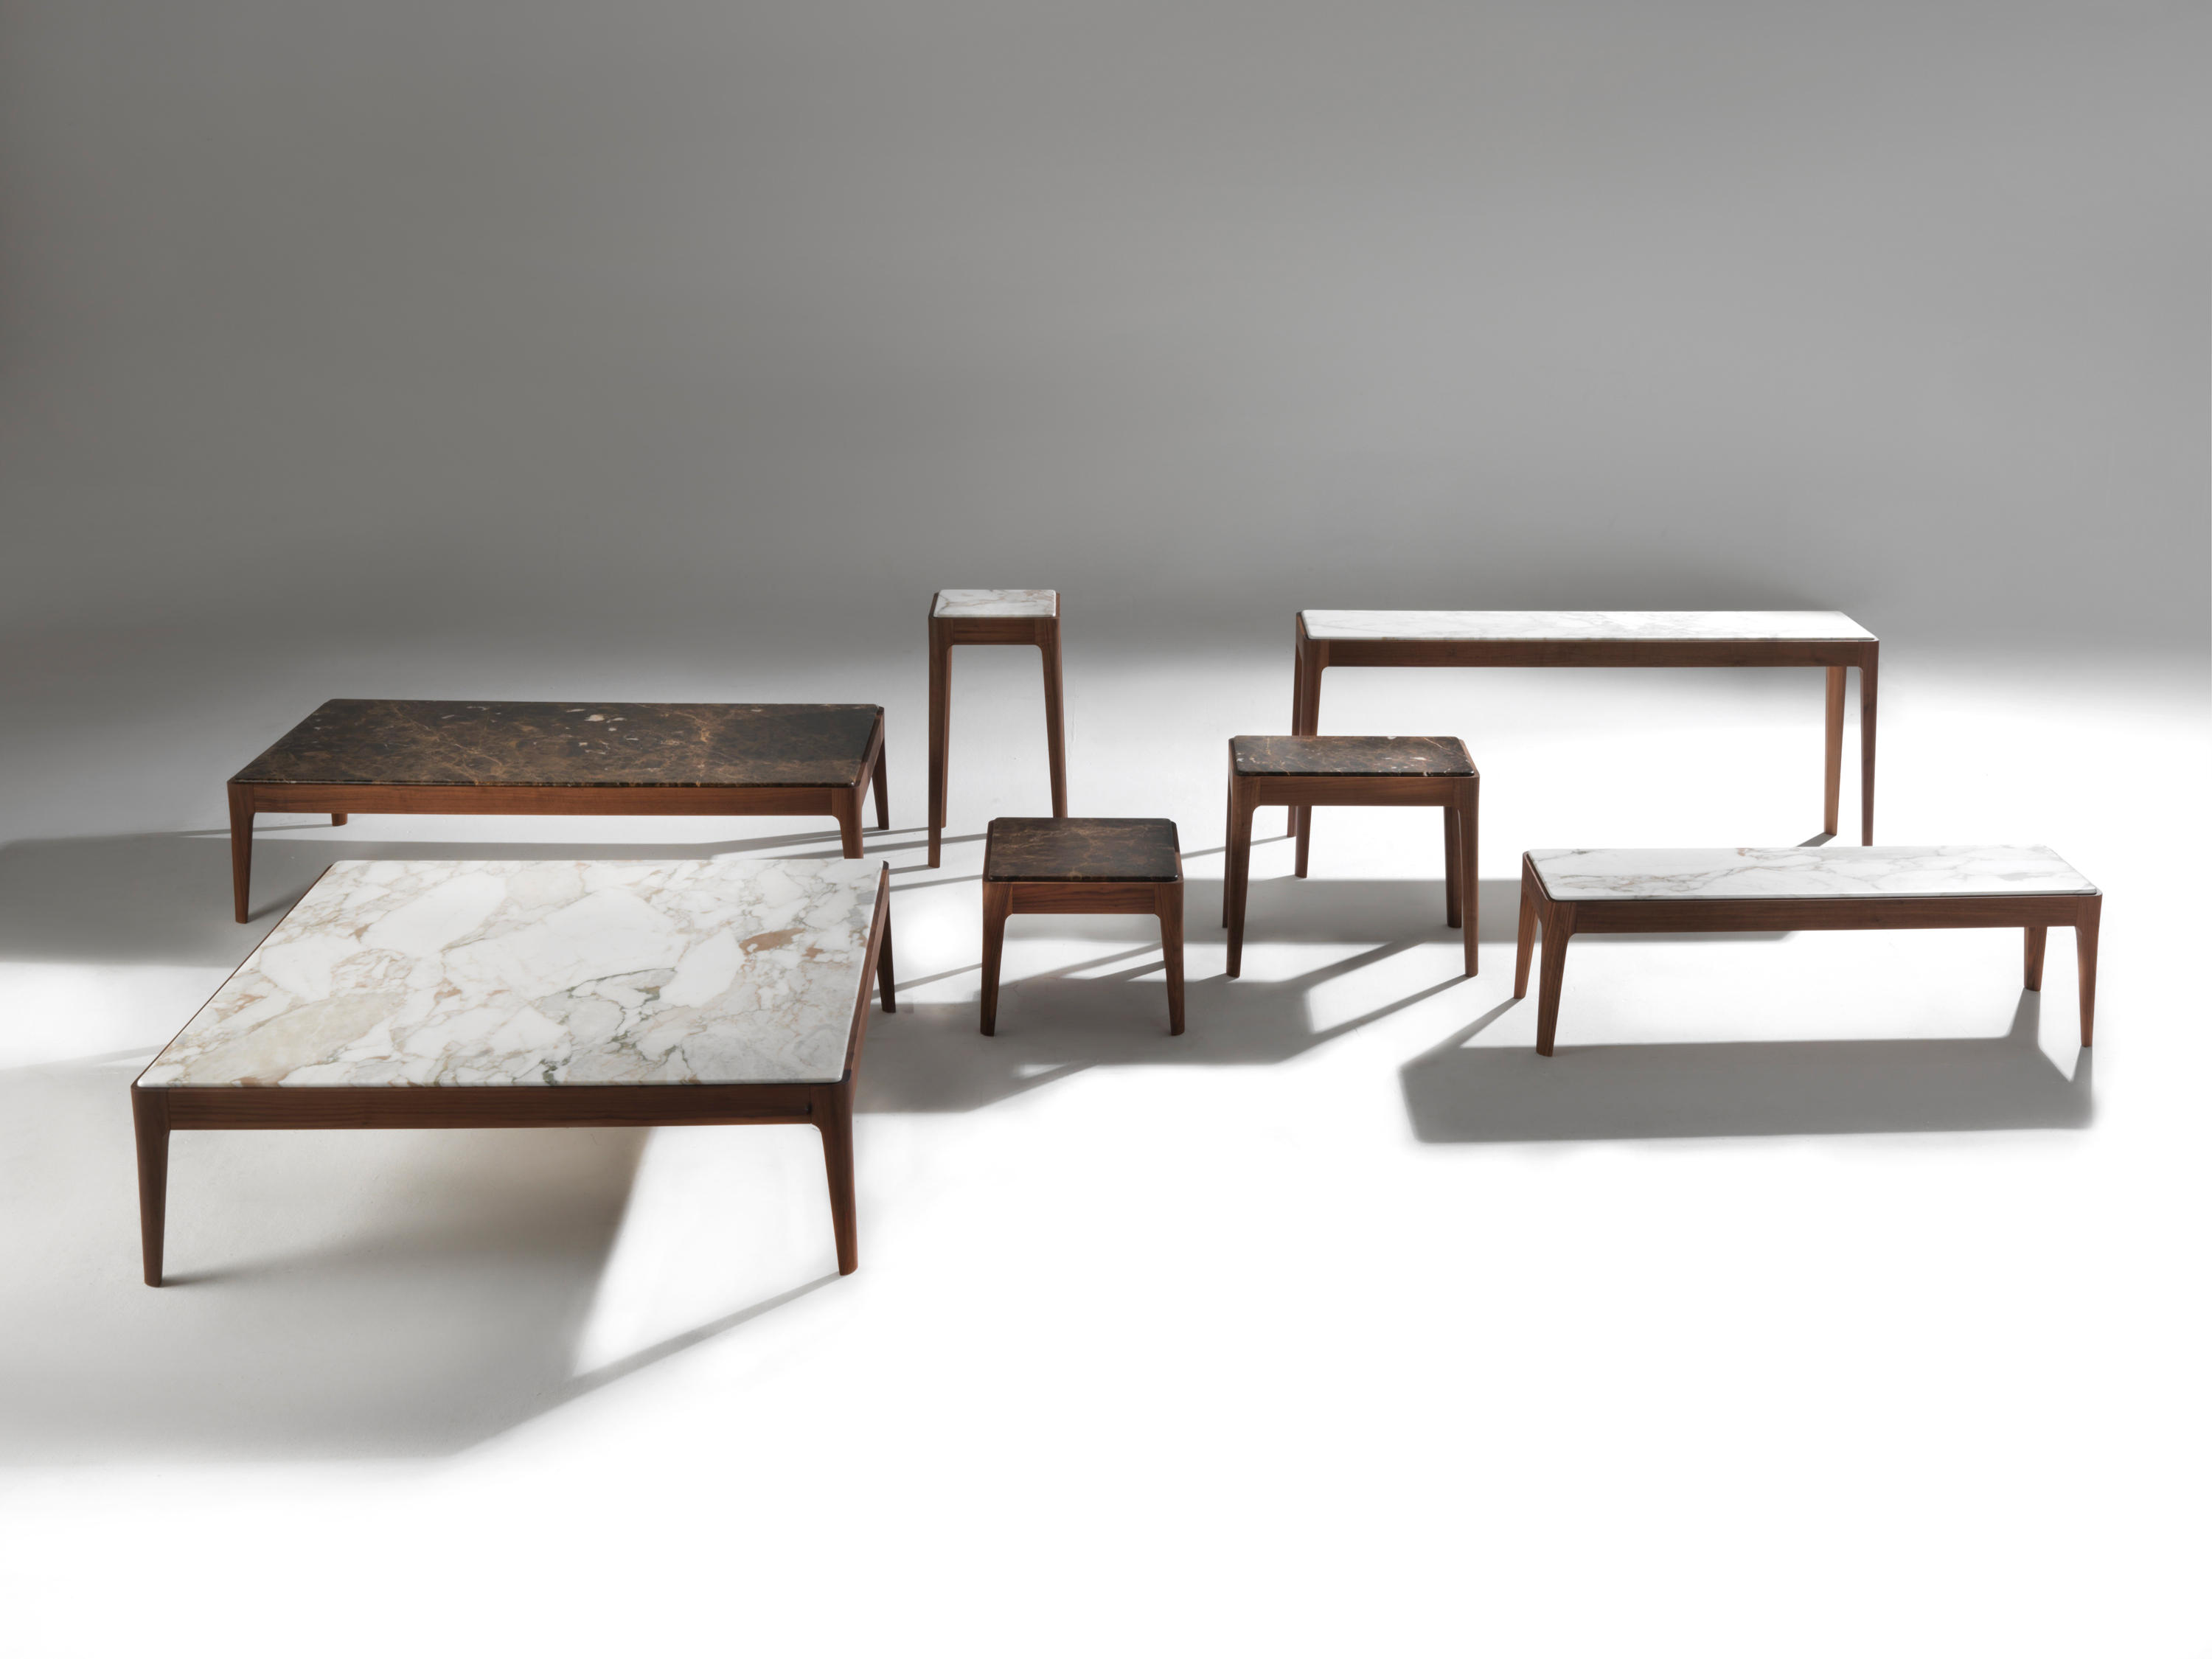 ZIGGY 8 Console tables from Porada